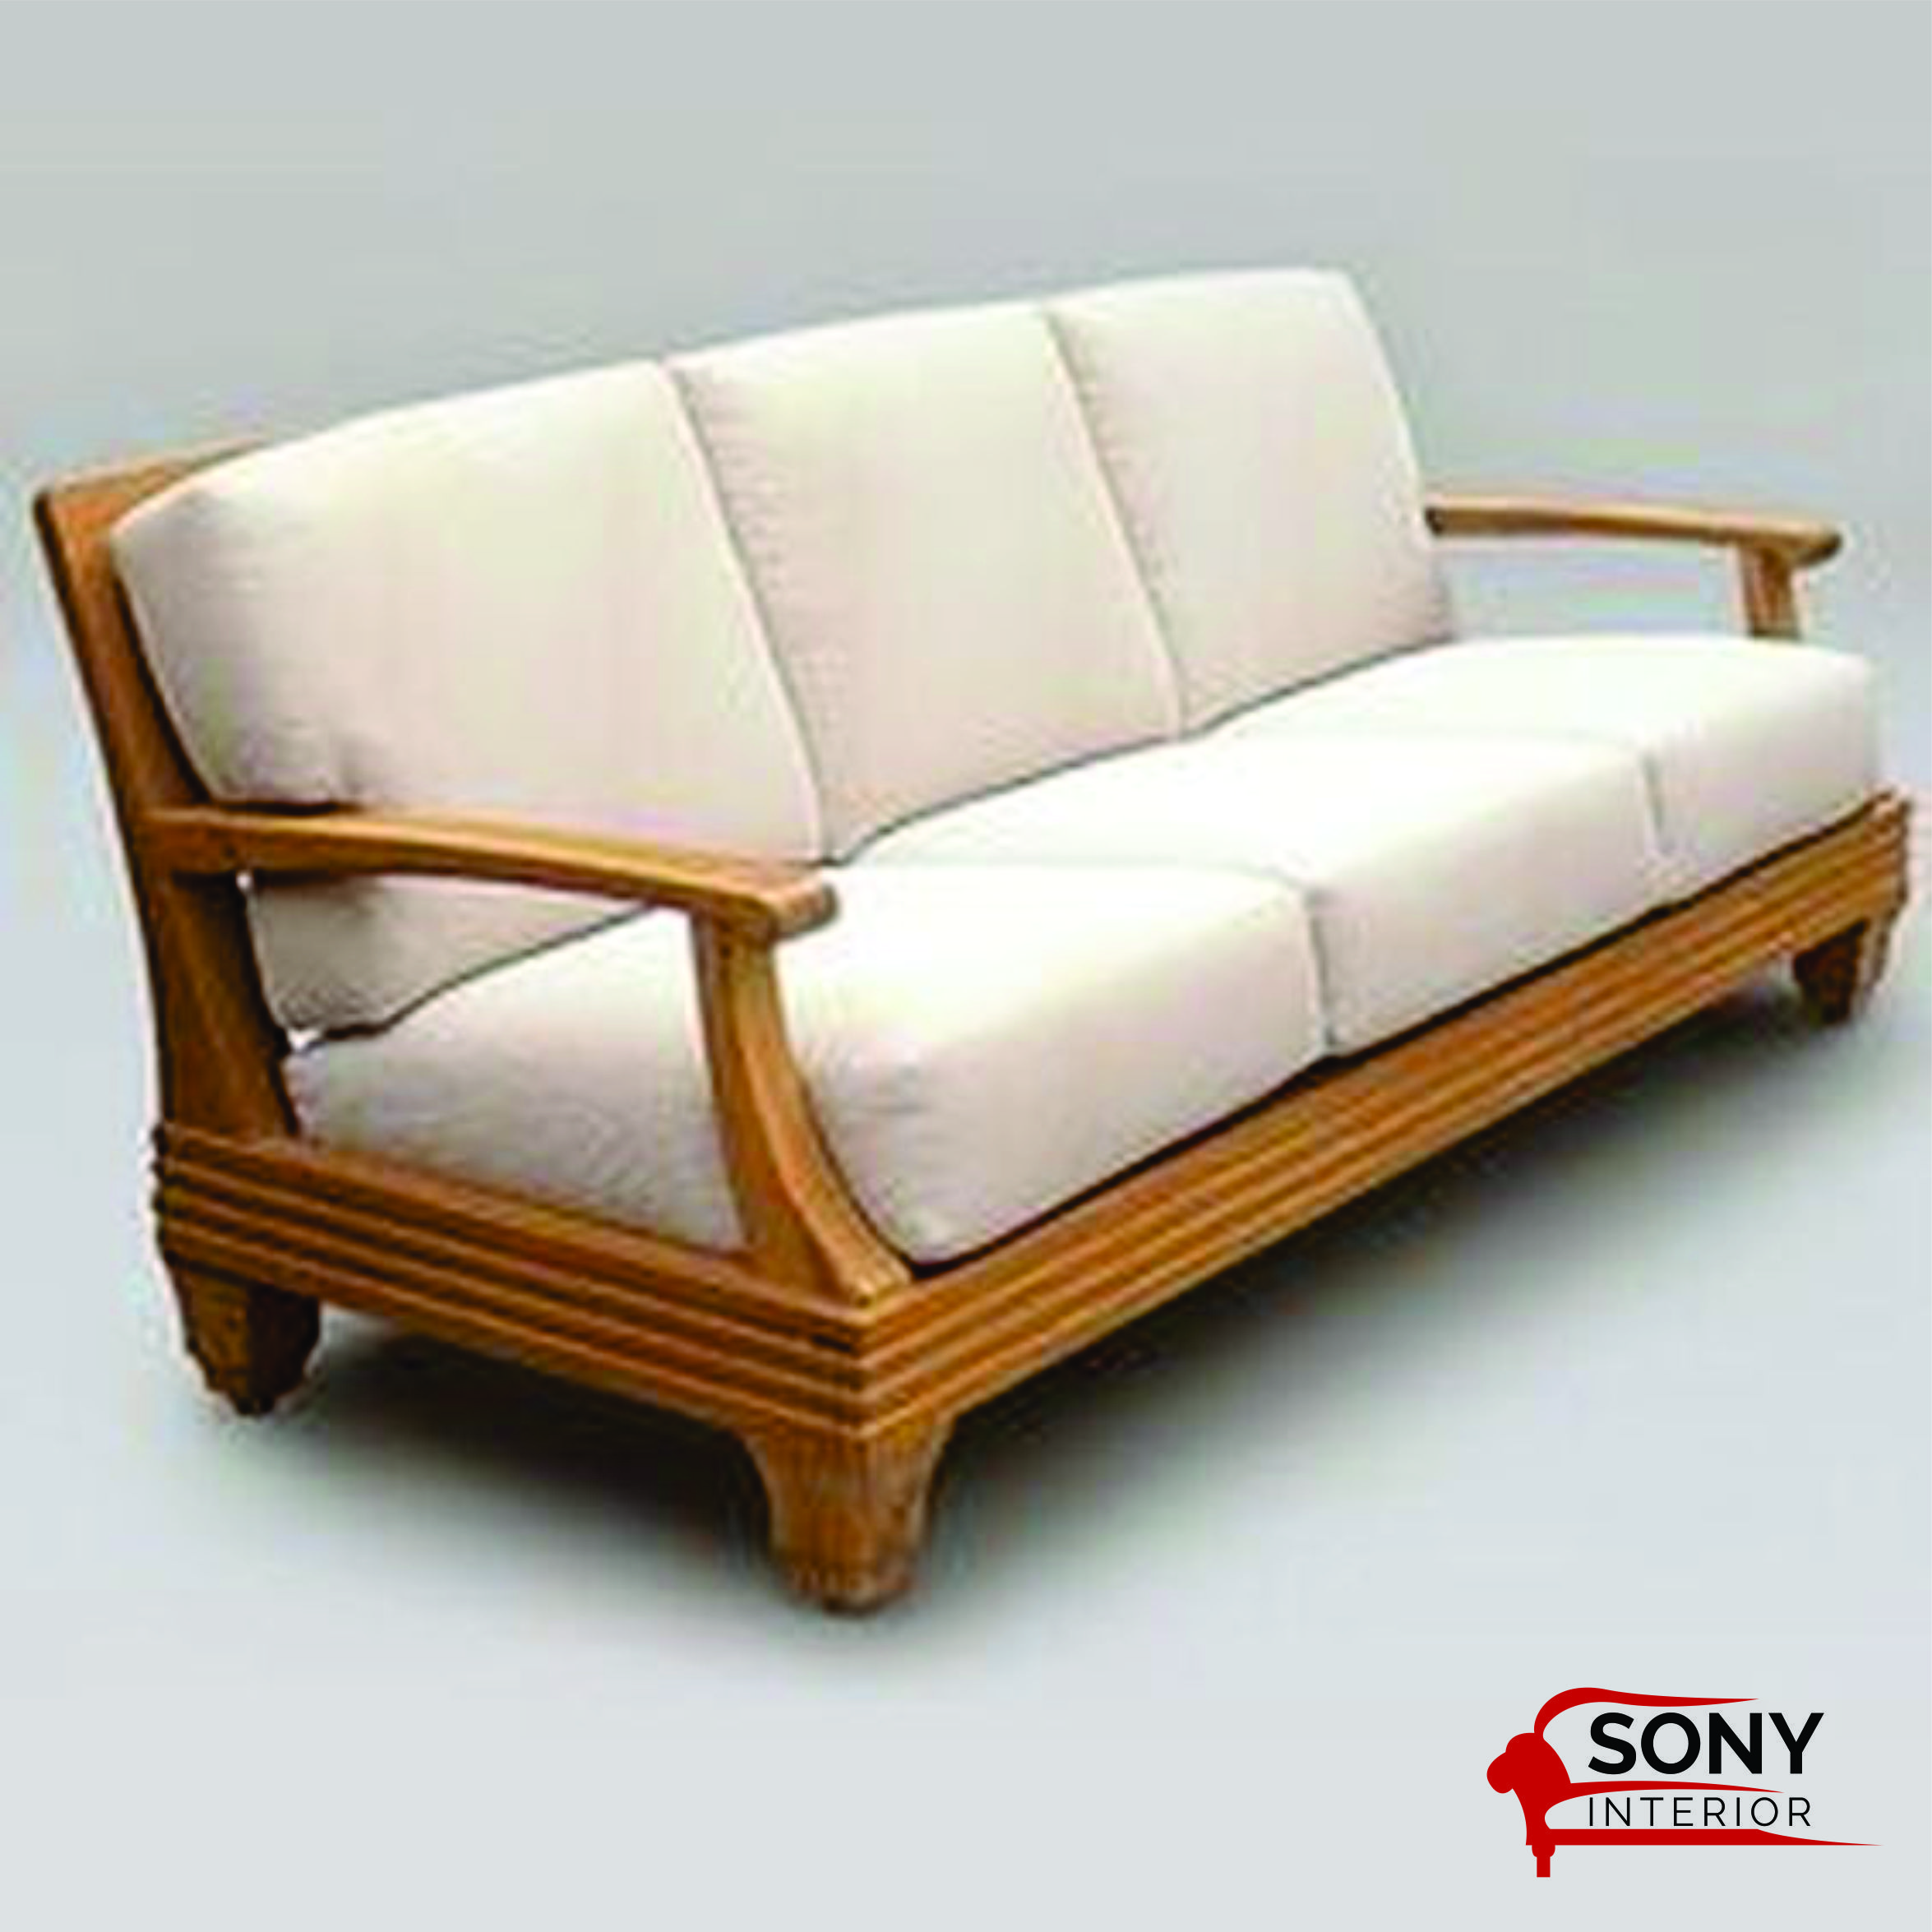 Pin By Sony Interior On Sofas In 2020 Rustic Sofa Teak Sofa Wooden Sofa